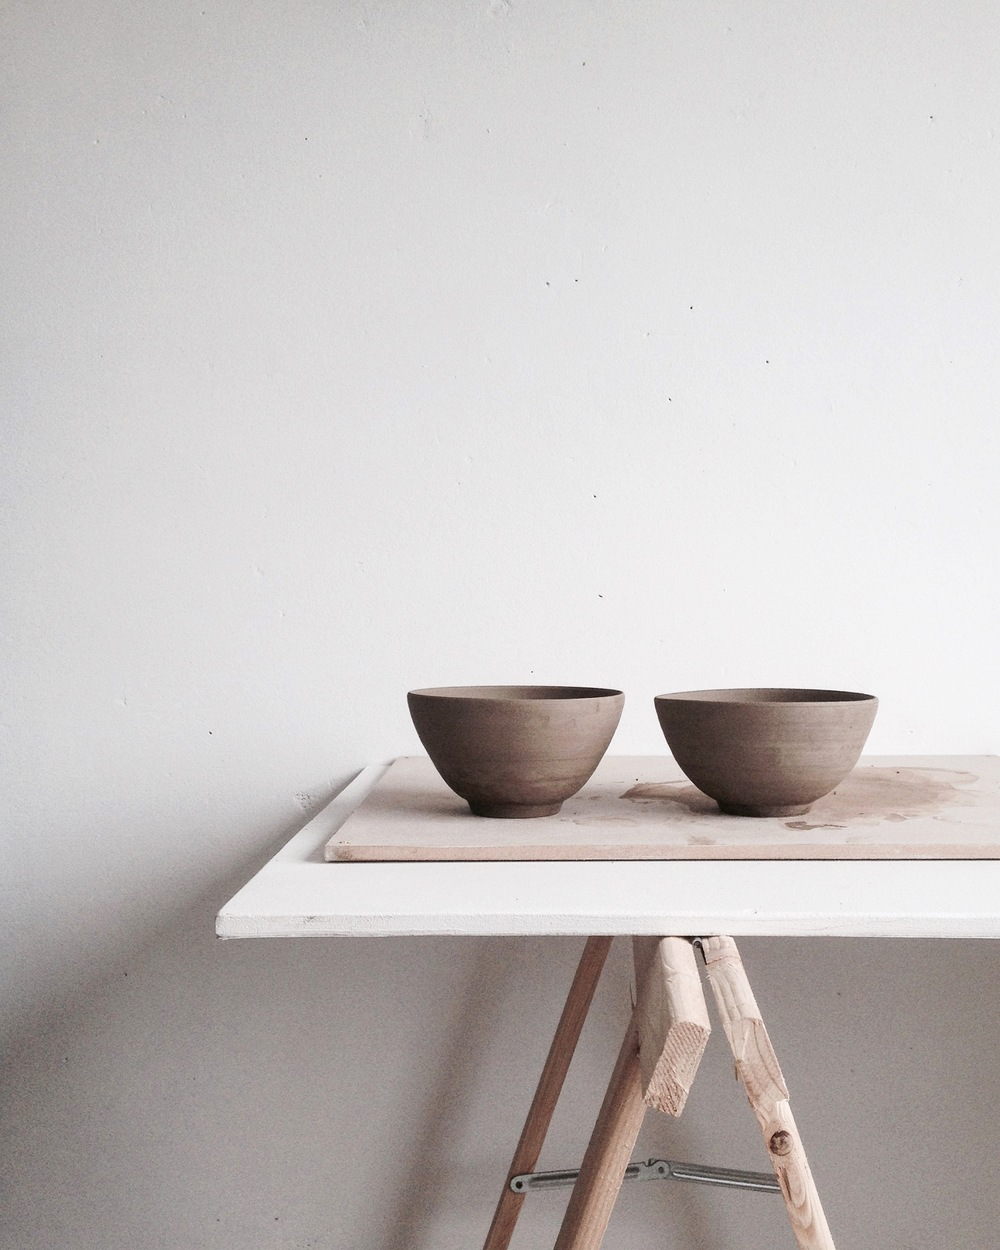 Bowls, dark brown, unfired. Orders available through my Etsy shop or custom made requests;  julyadrichem@gmail.com.